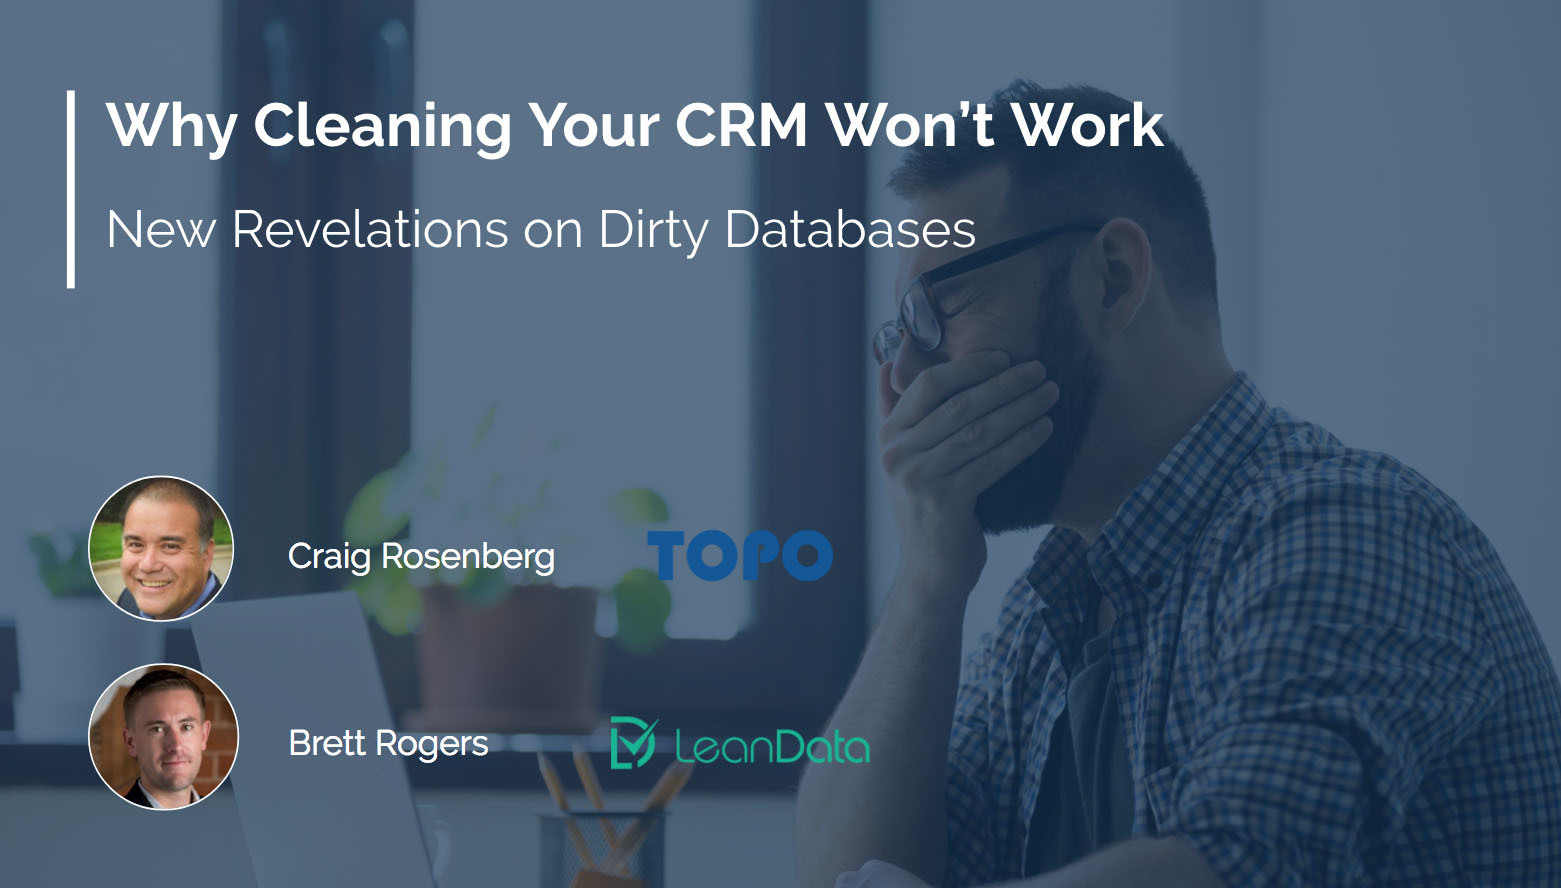 Why Cleaning Your CRM Won't Work